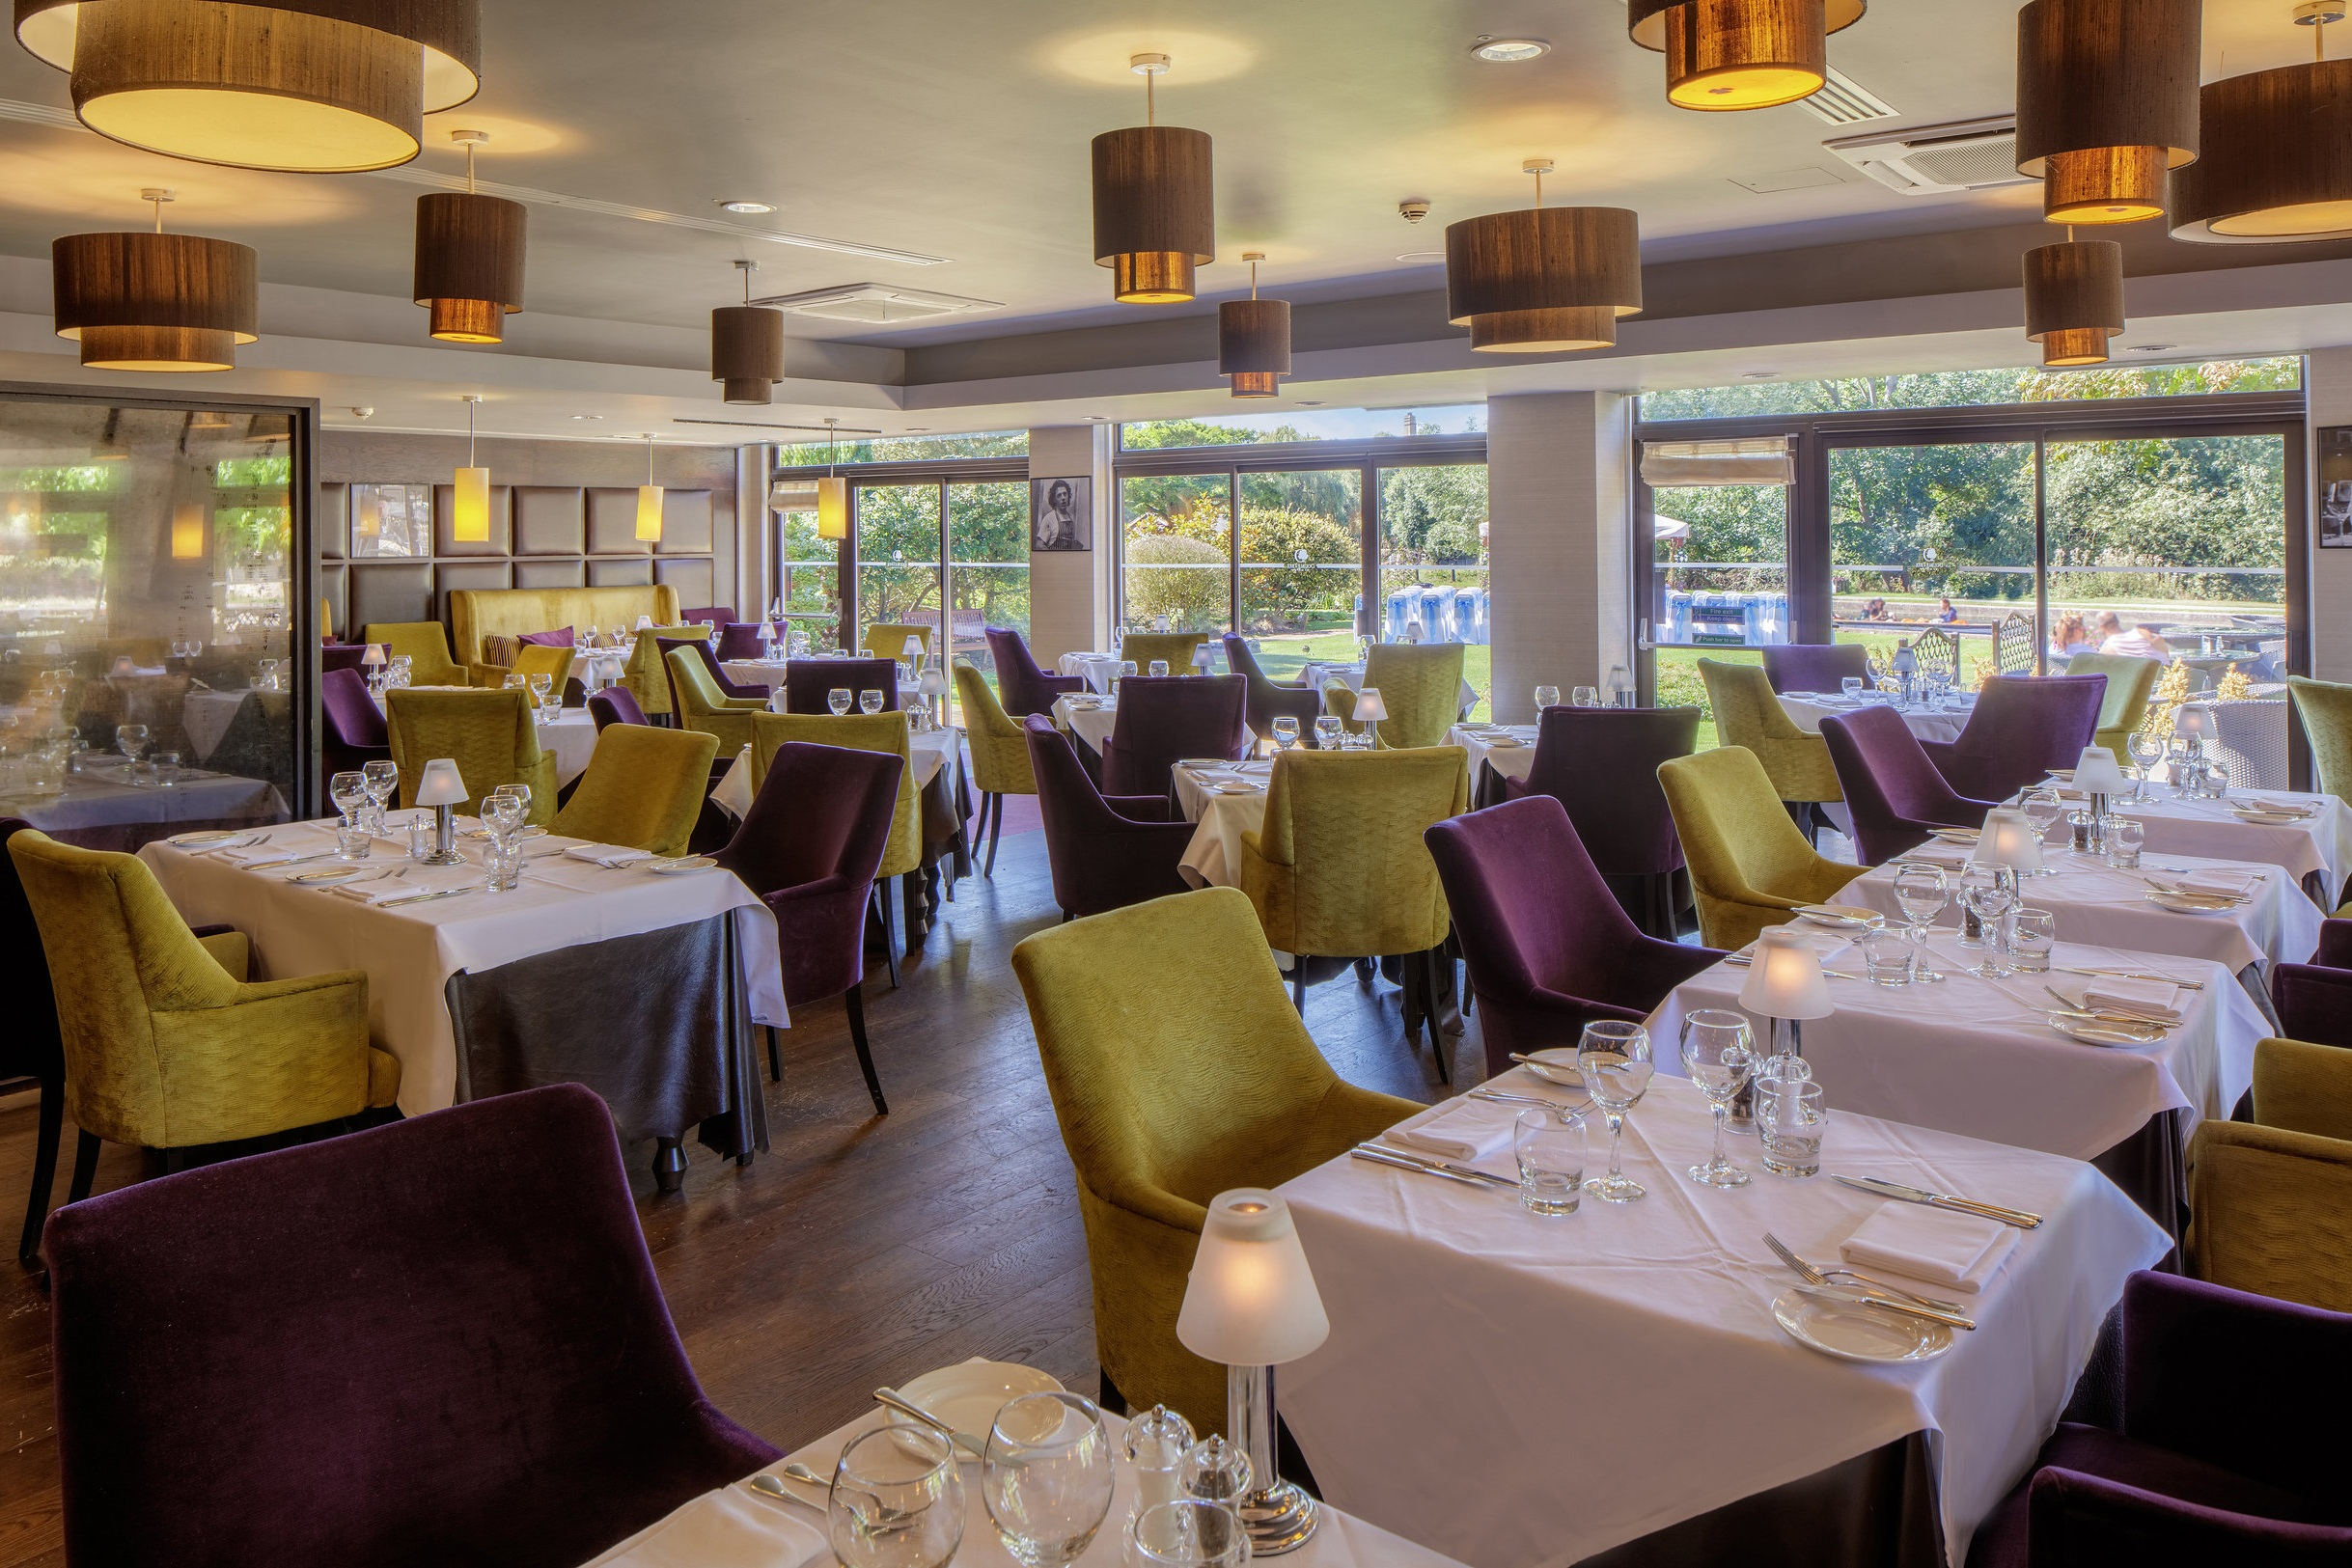 Doubletree by Hilton Cambridge City - £10 and £15 food offers